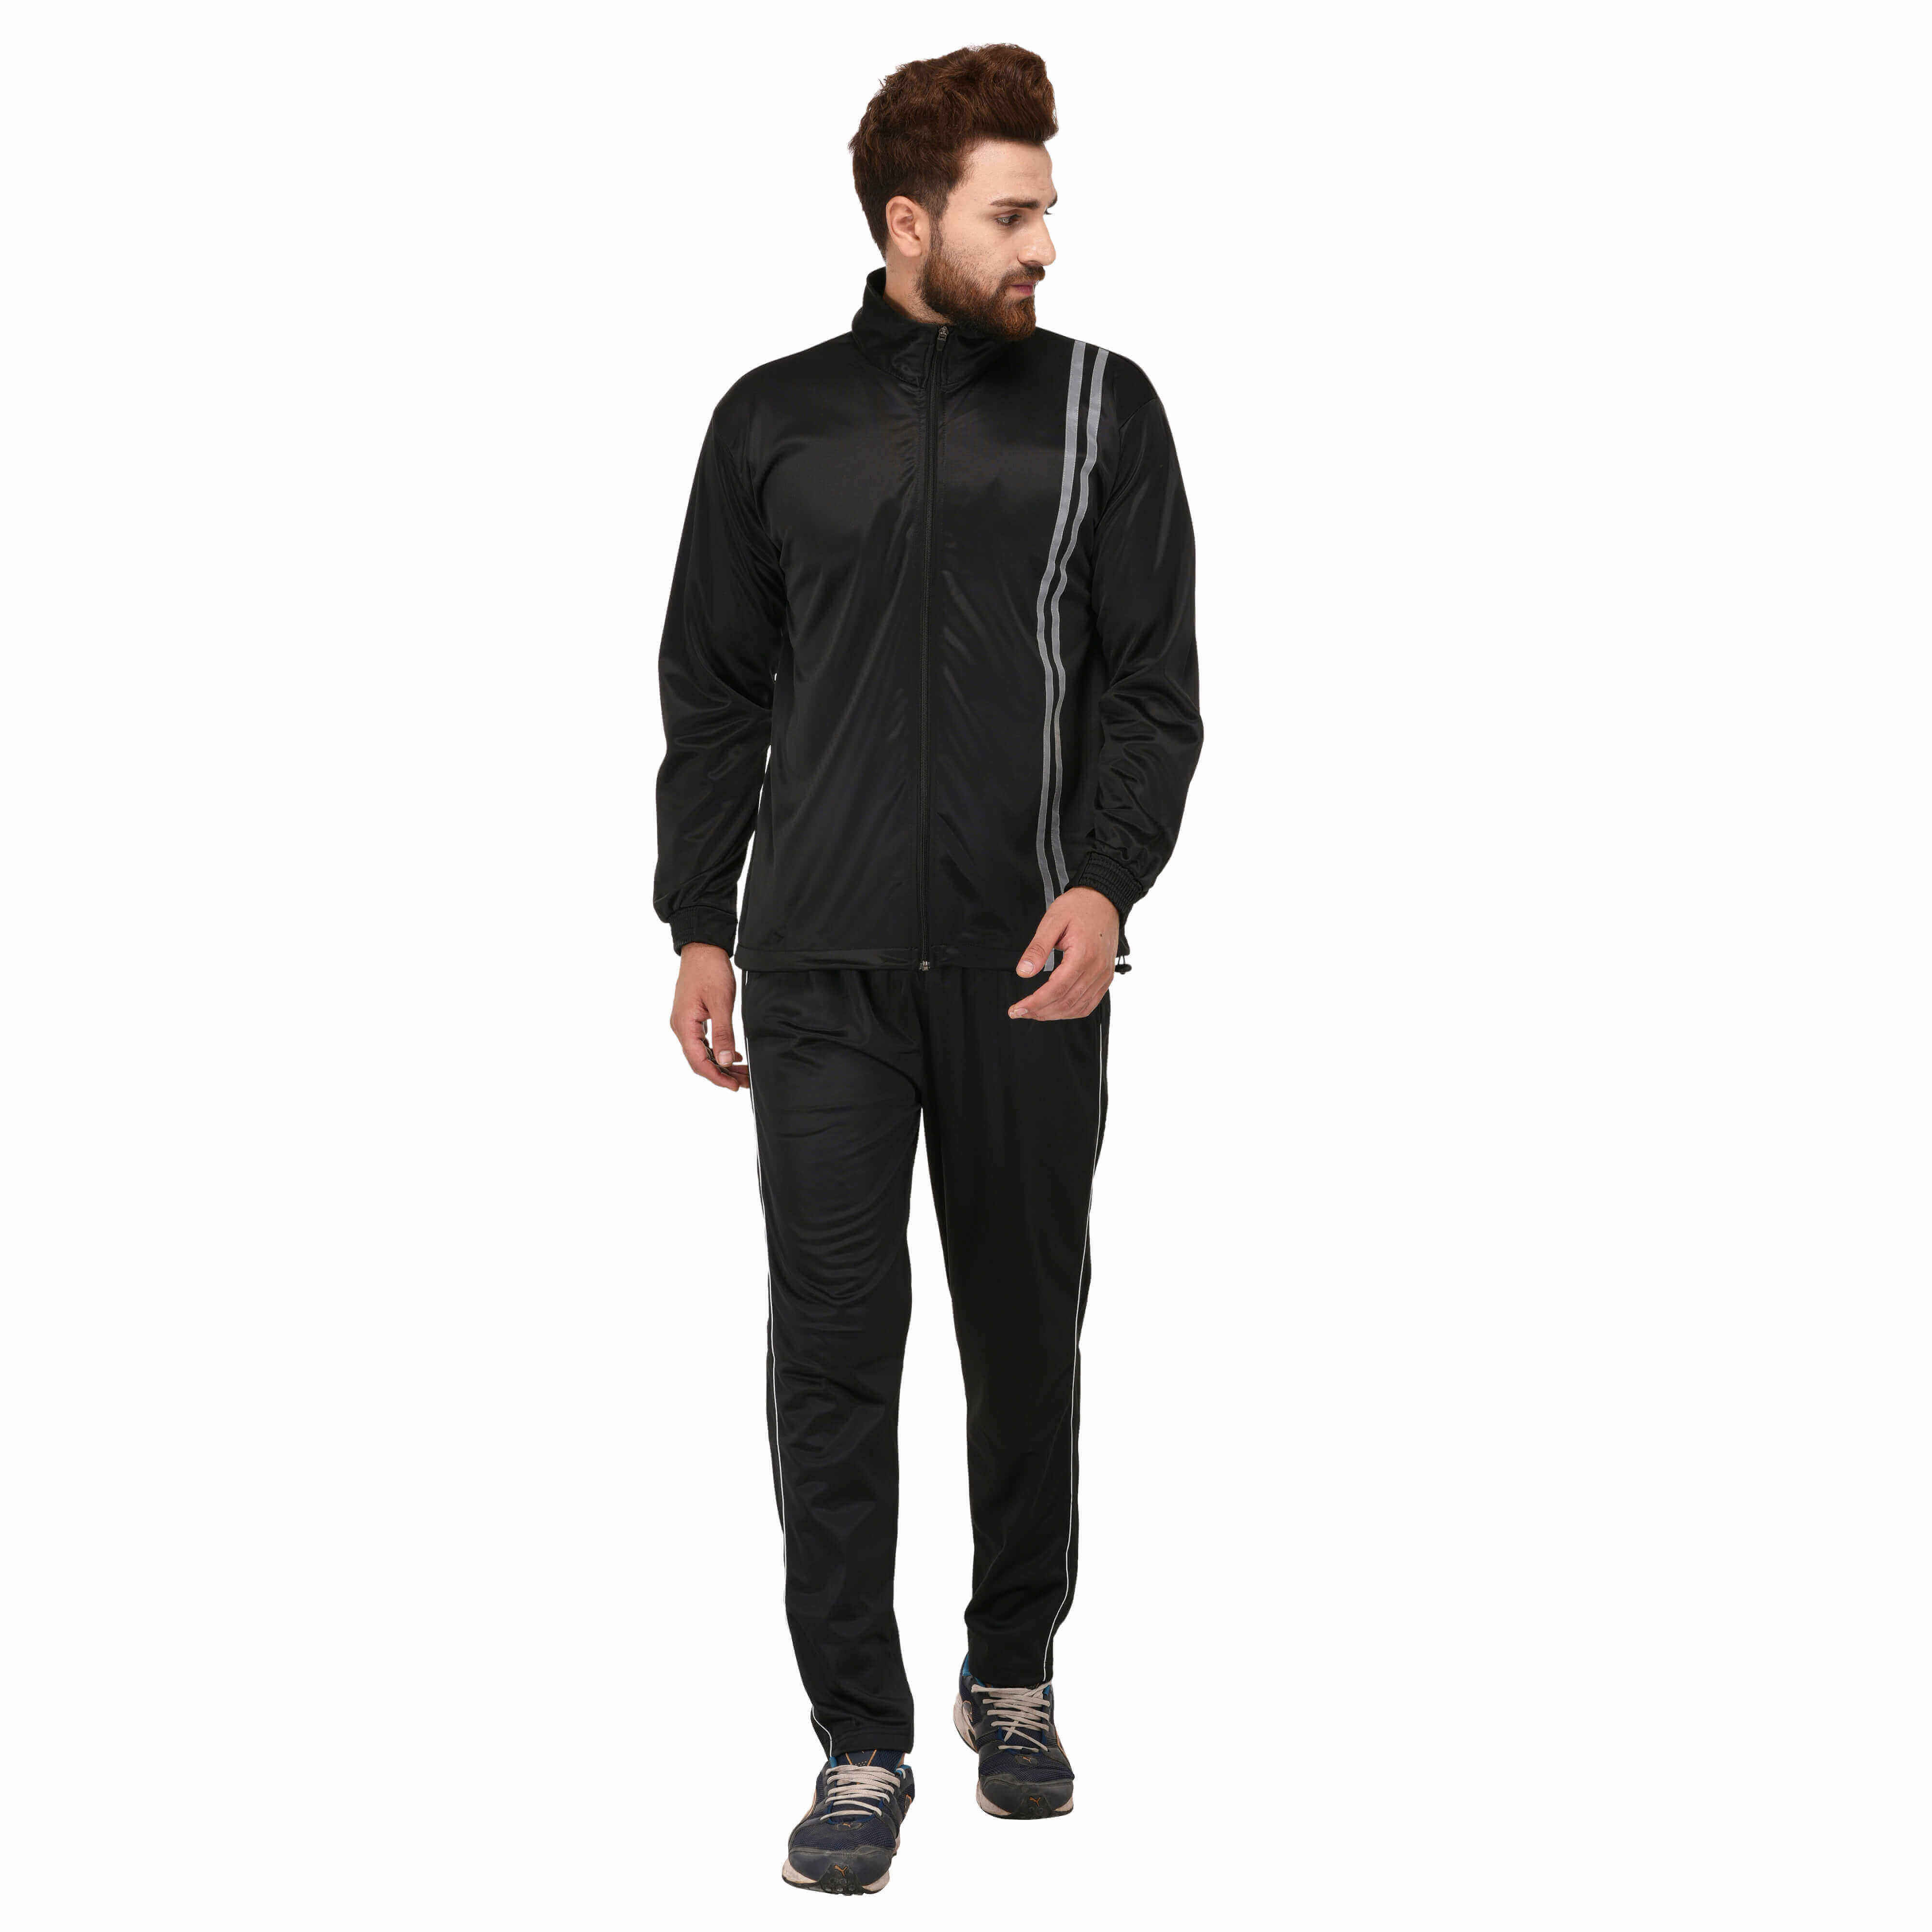 Mens Tracksuit Set Manufacturers in Bolivia